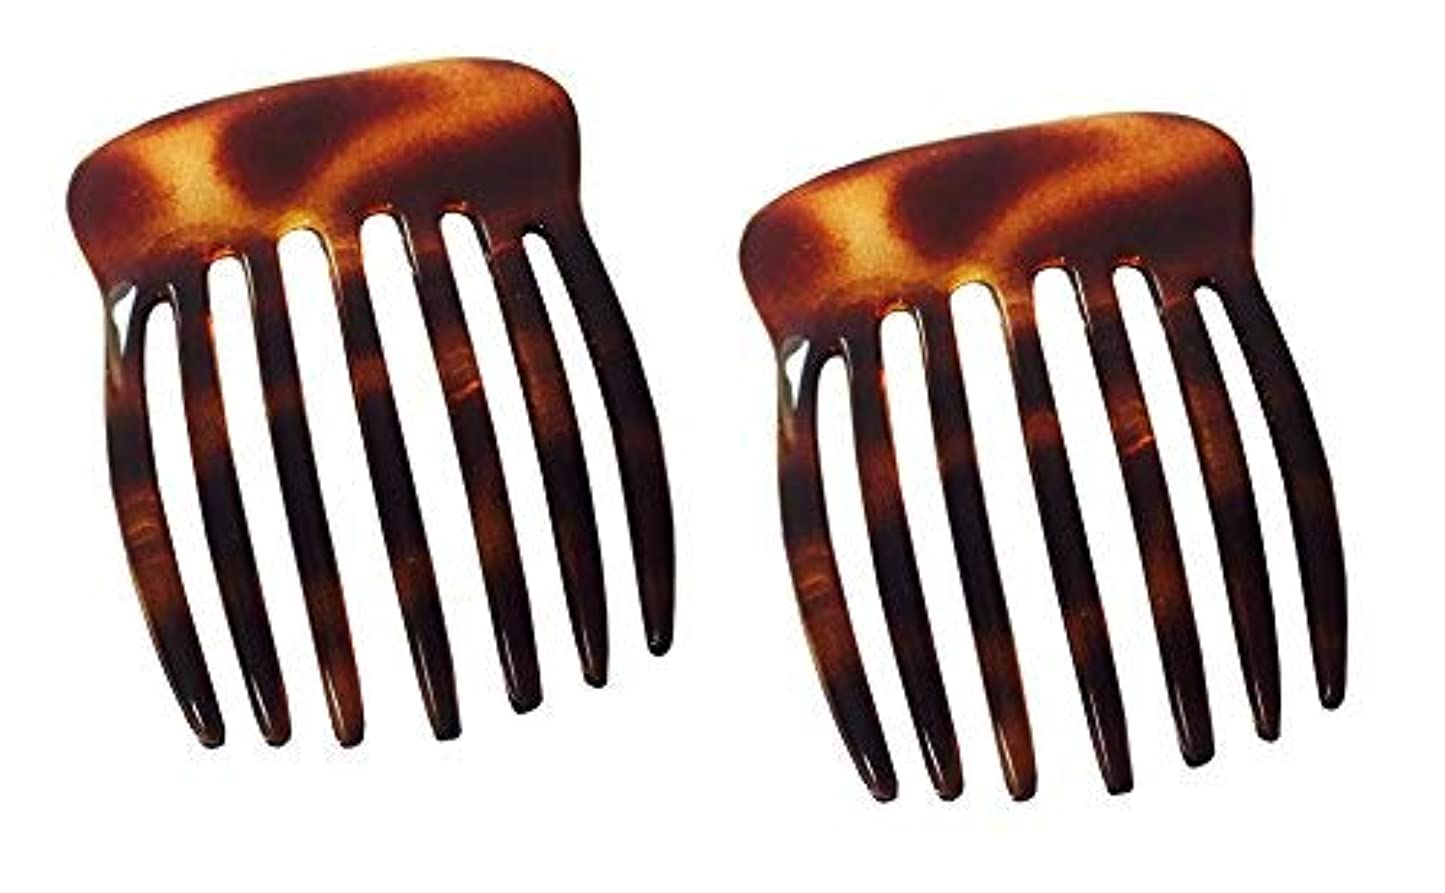 不健康半球丘Parcelona French Fingers Seven Teeth Large 2 Pieces Celluloid Acetate Tortoise Shell Hair Side Hair Combs [並行輸入品]